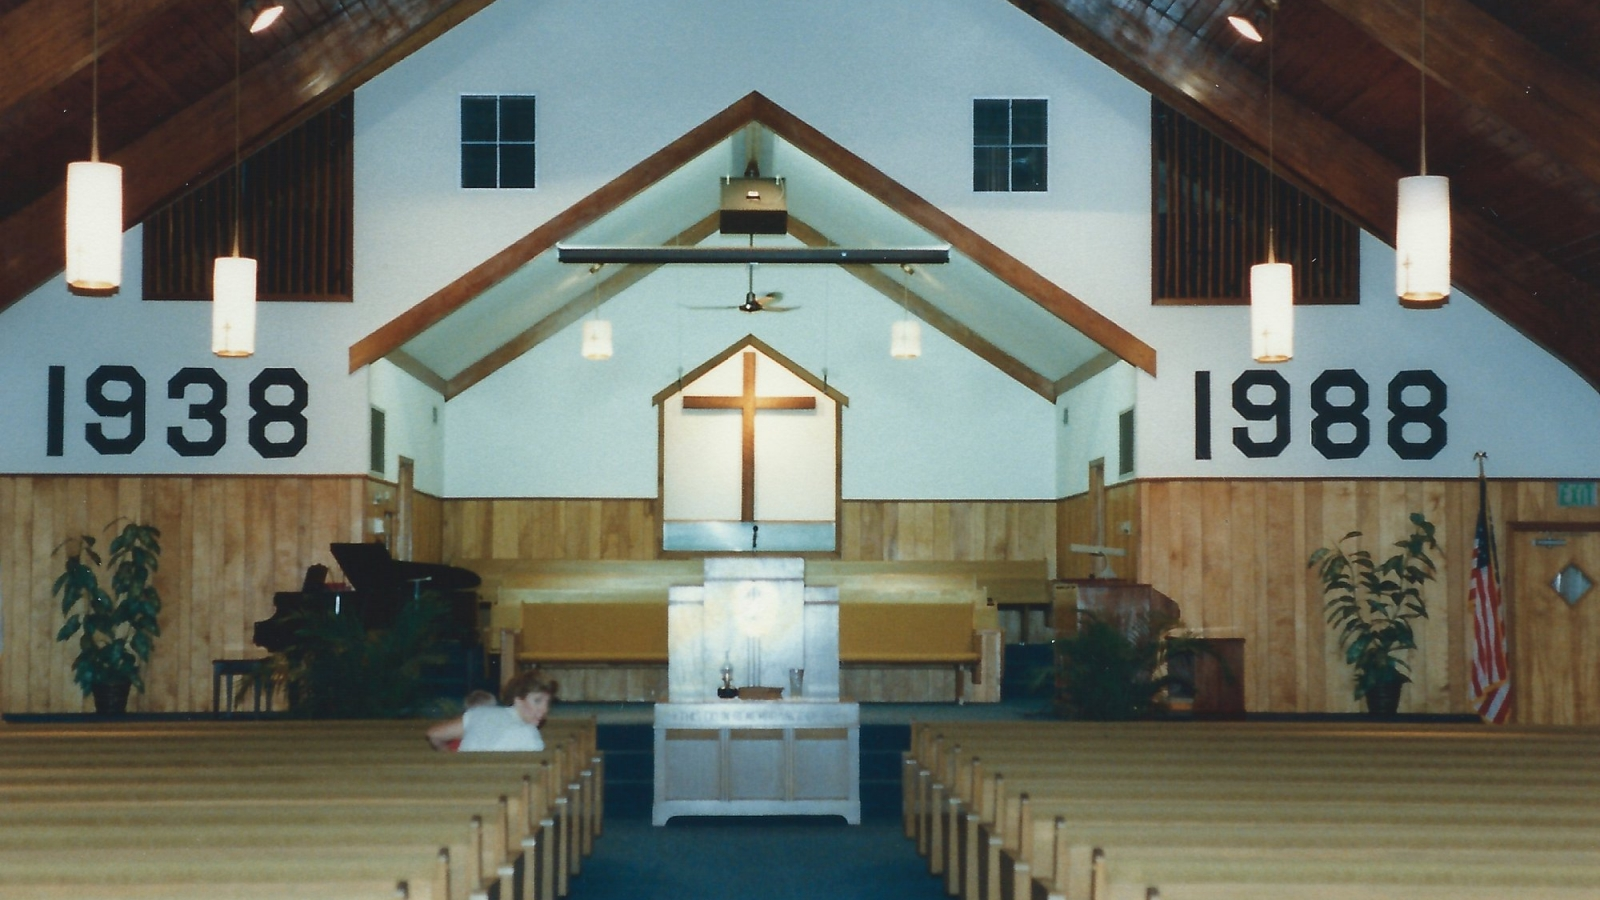 1988 choir loft modified 1988